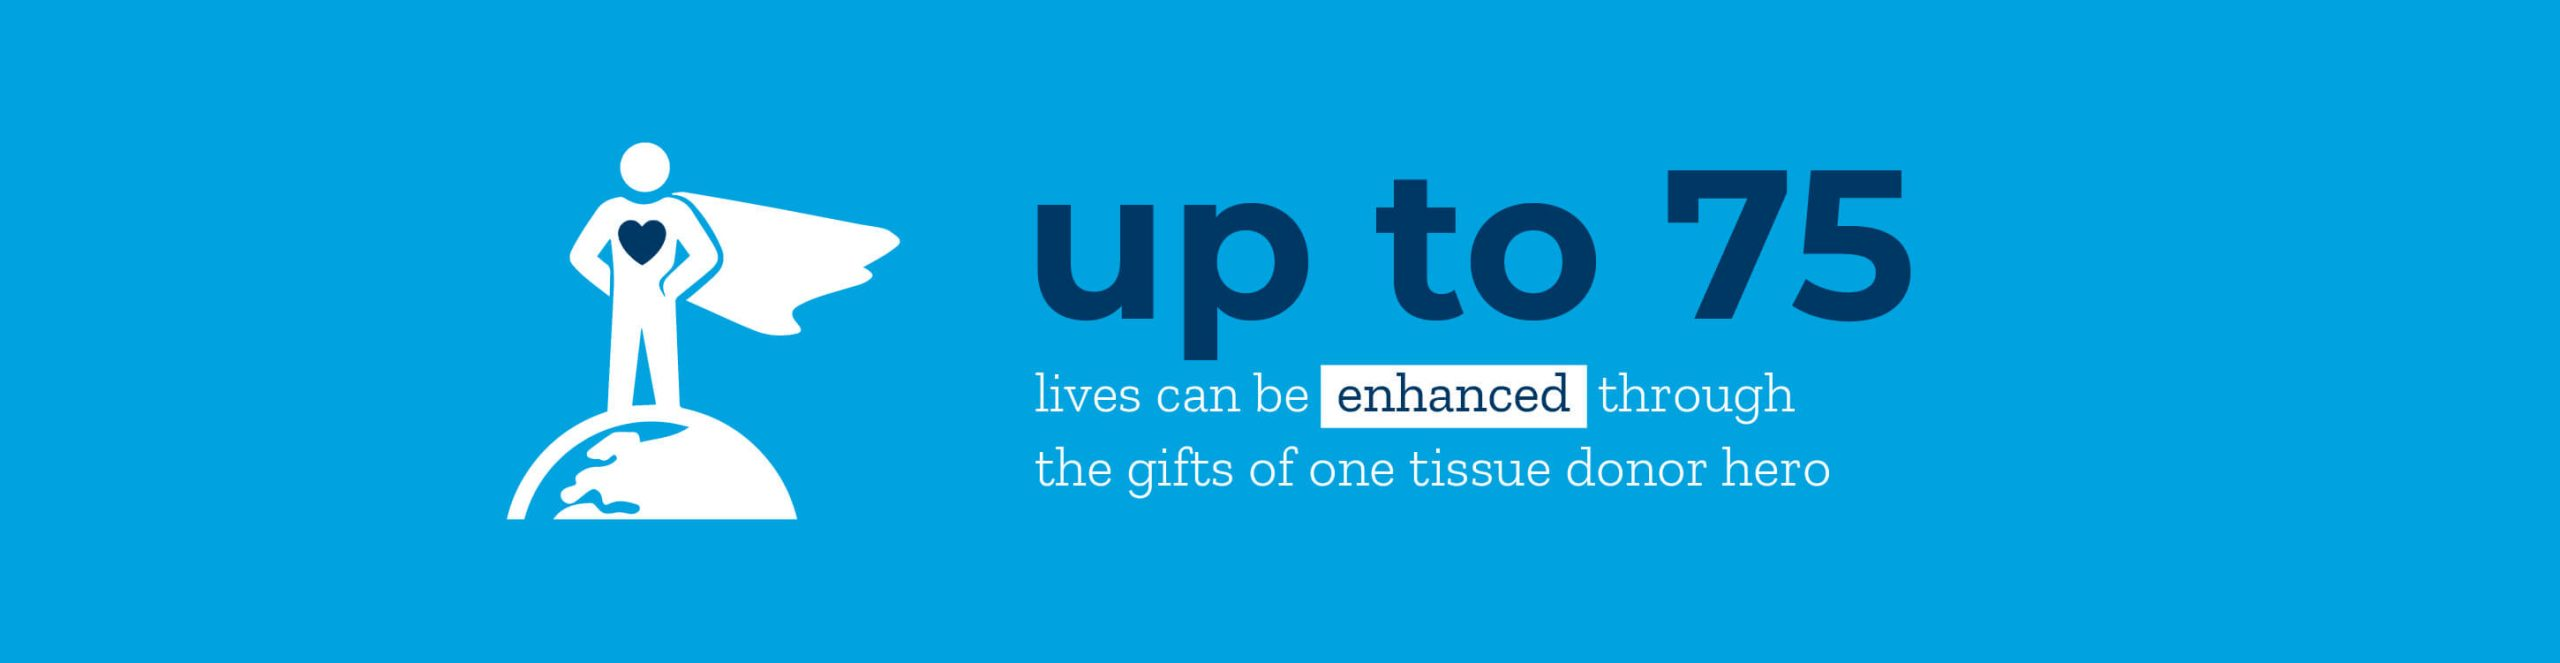 Infographic: up to 75 lives can be enhanced through the gifts of one tissue donor hero.